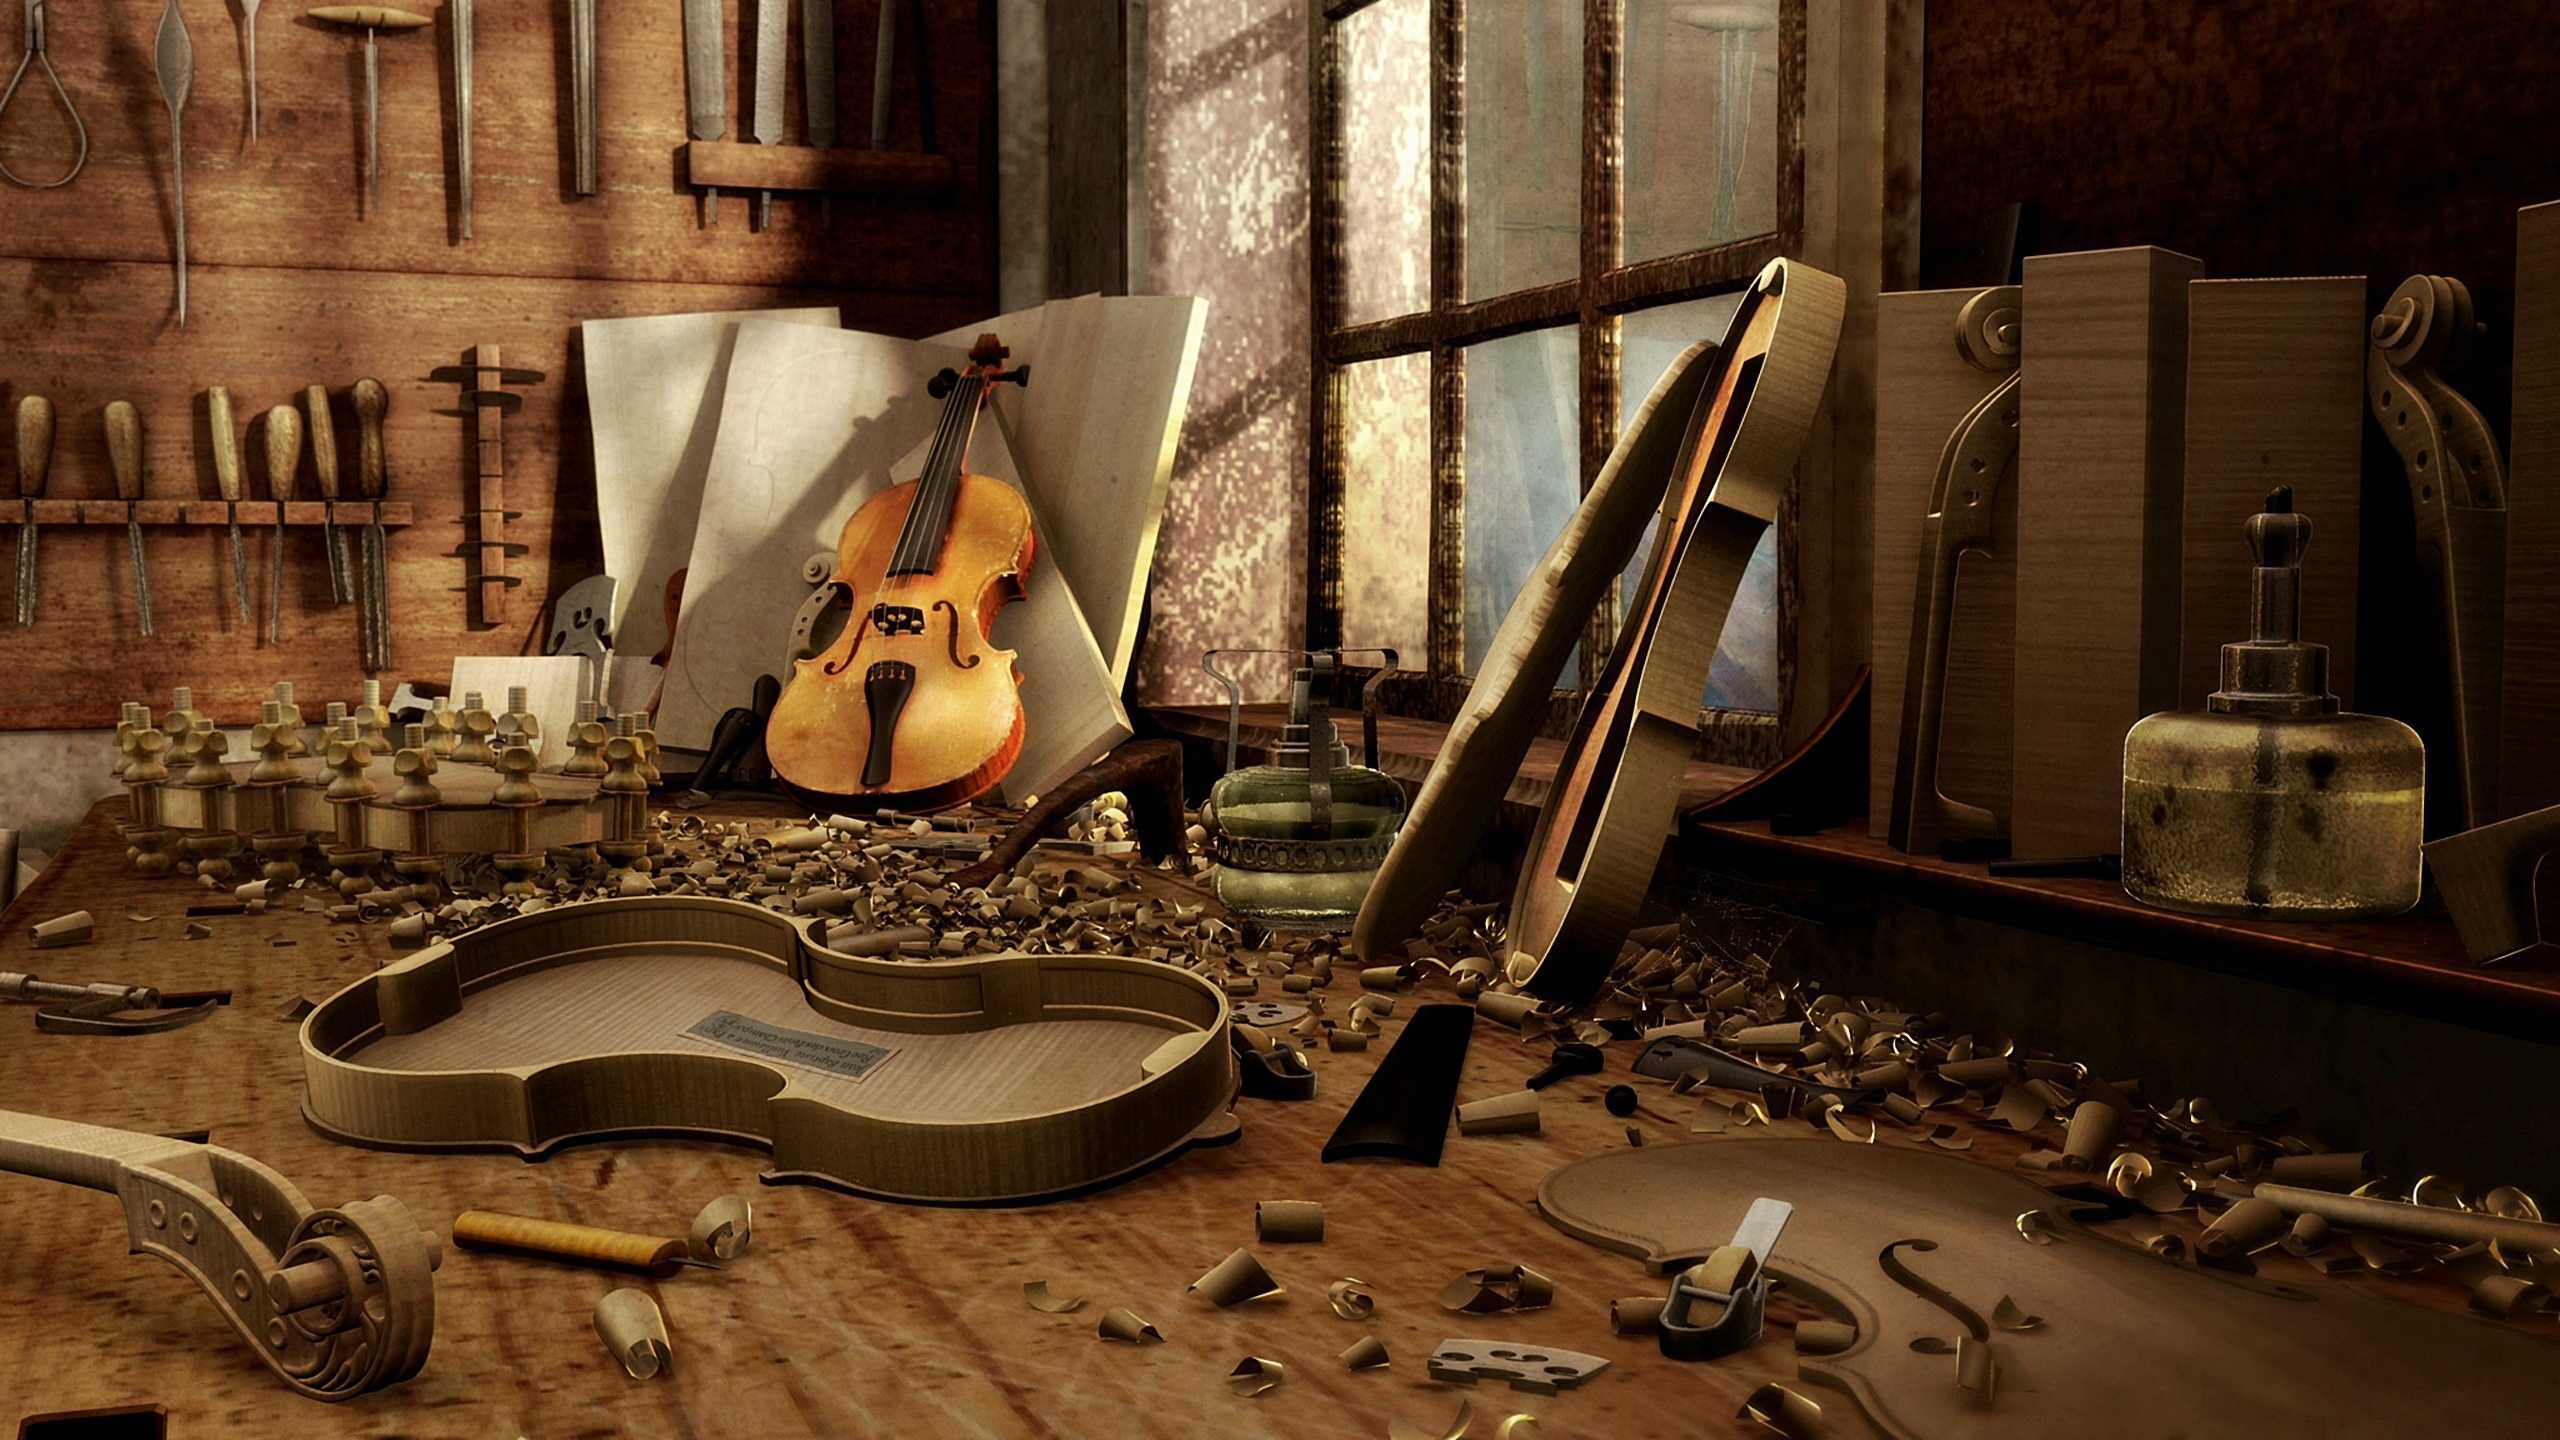 Make A violins Wallpaper Image